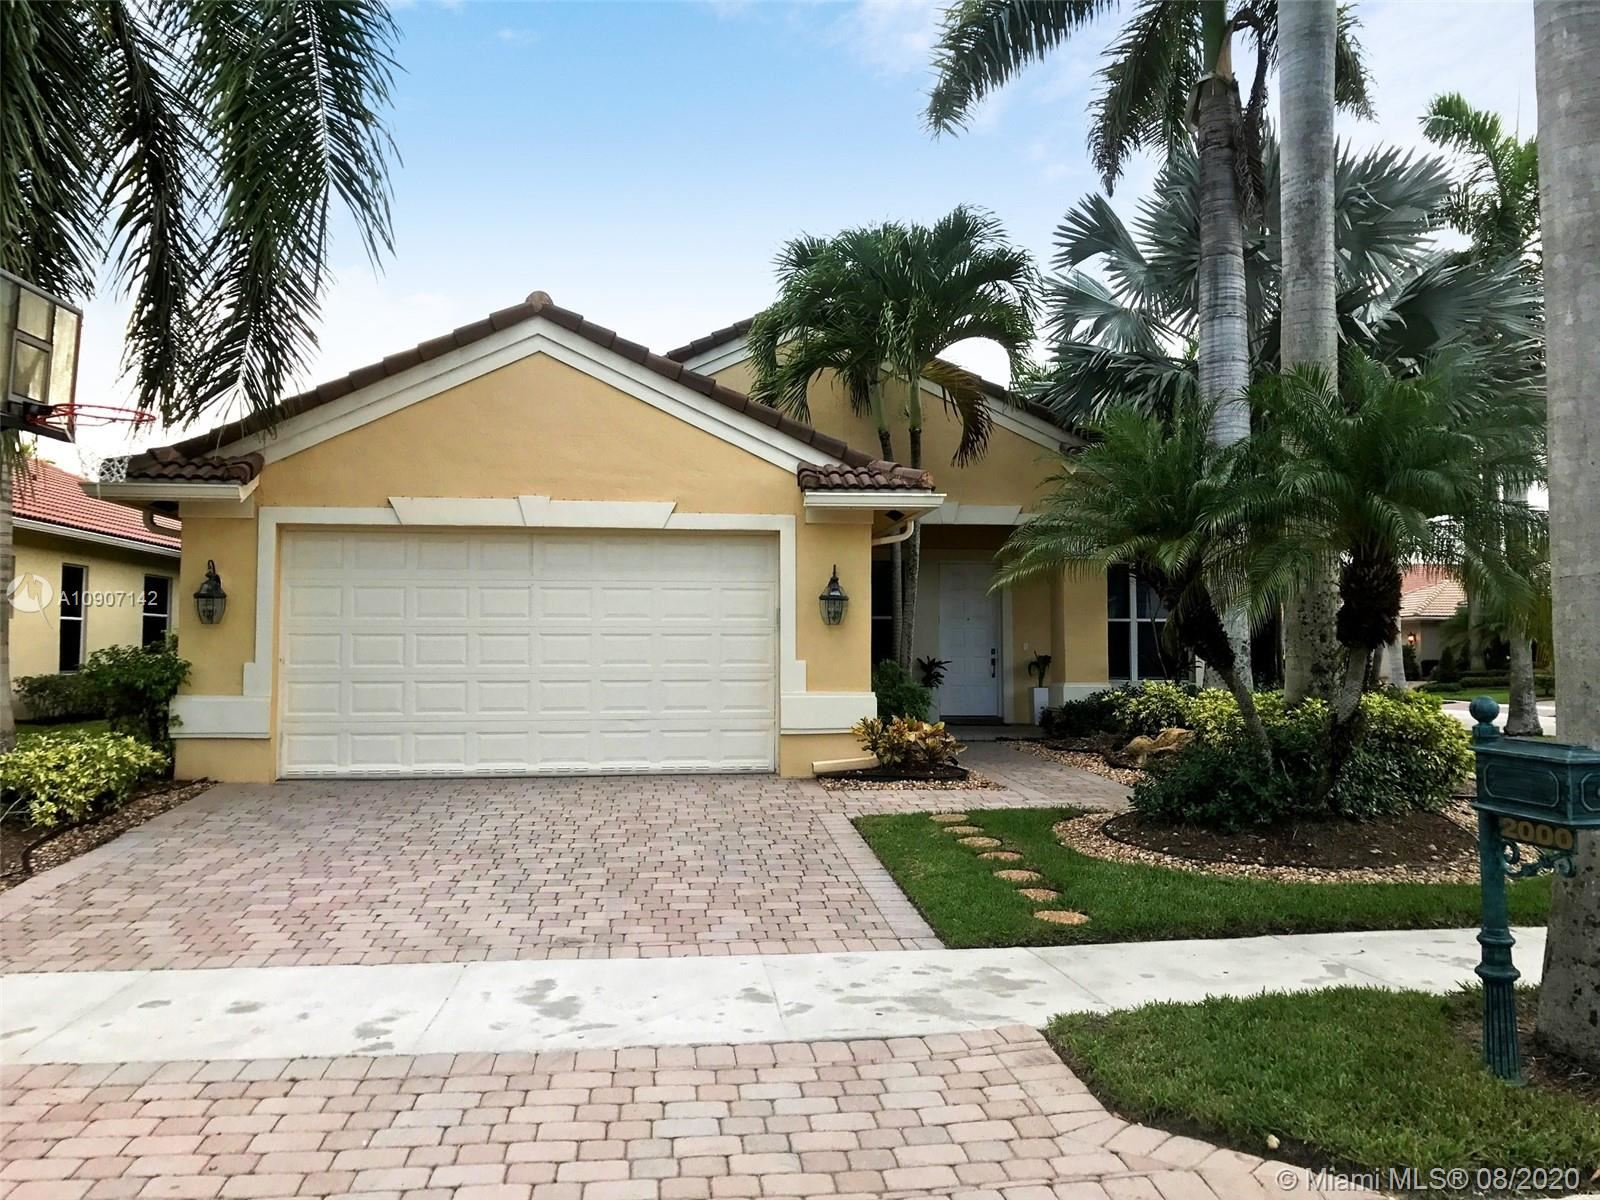 2000 Harbor View Cir, Weston, FL 33327 - #: A10907142